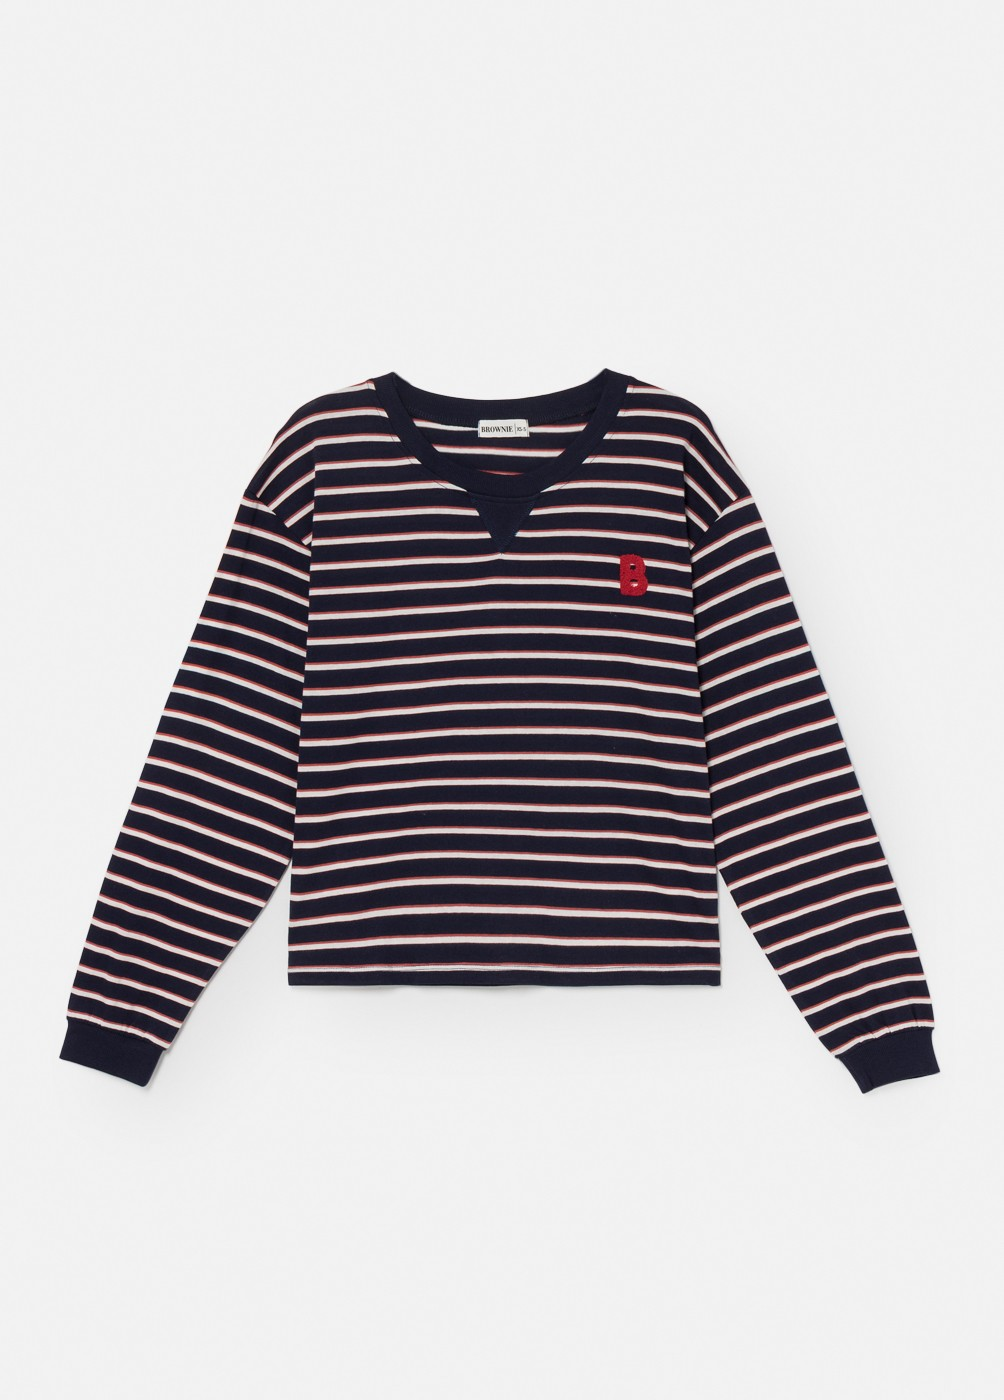 NORD CREW NECK LONG-SLEEVED STRIPED T-SHIRT